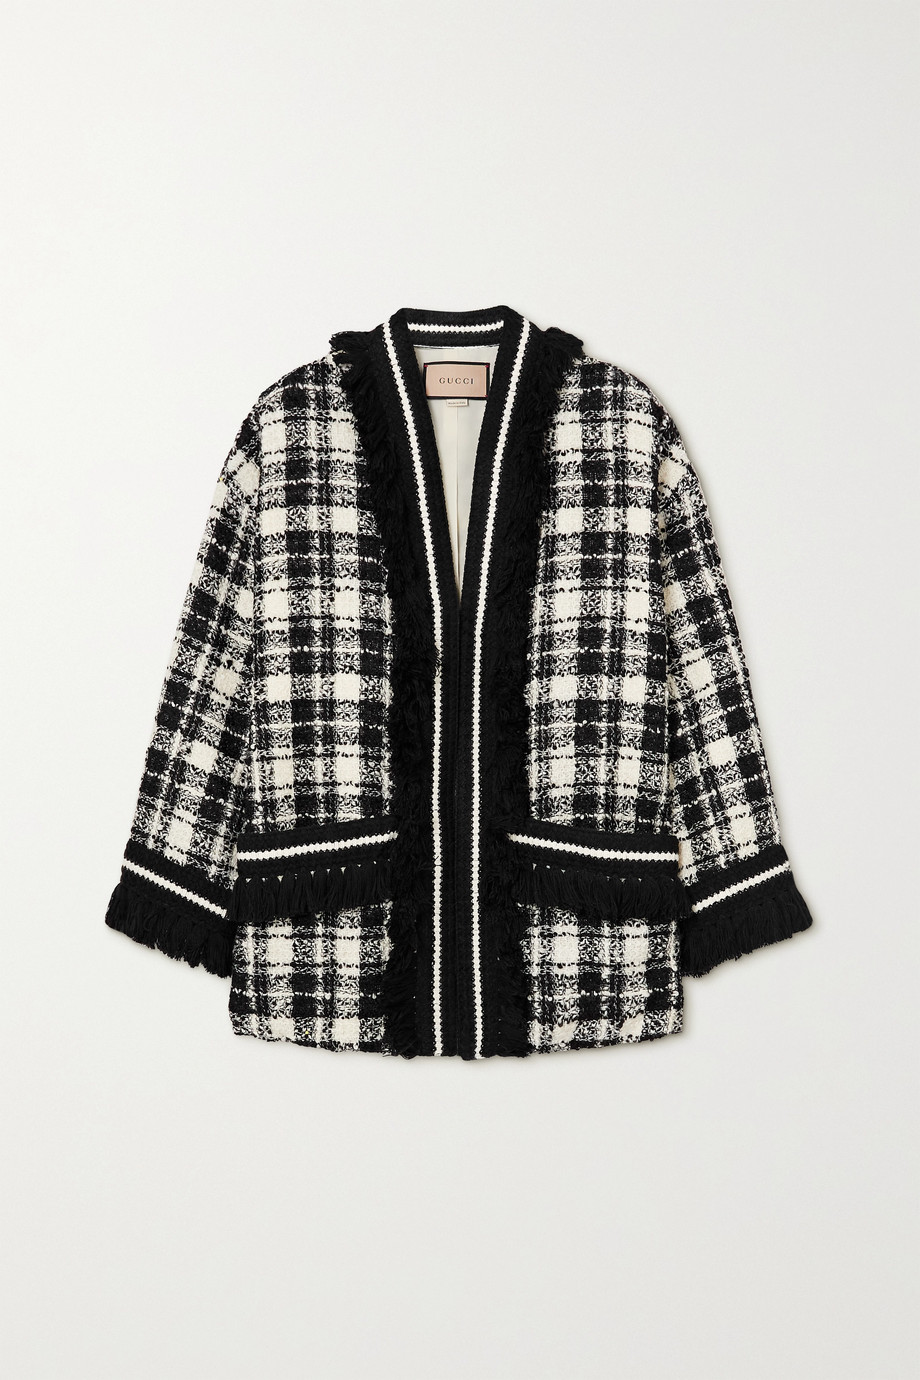 Gucci Oversized fringed checked wool-blend tweed jacket